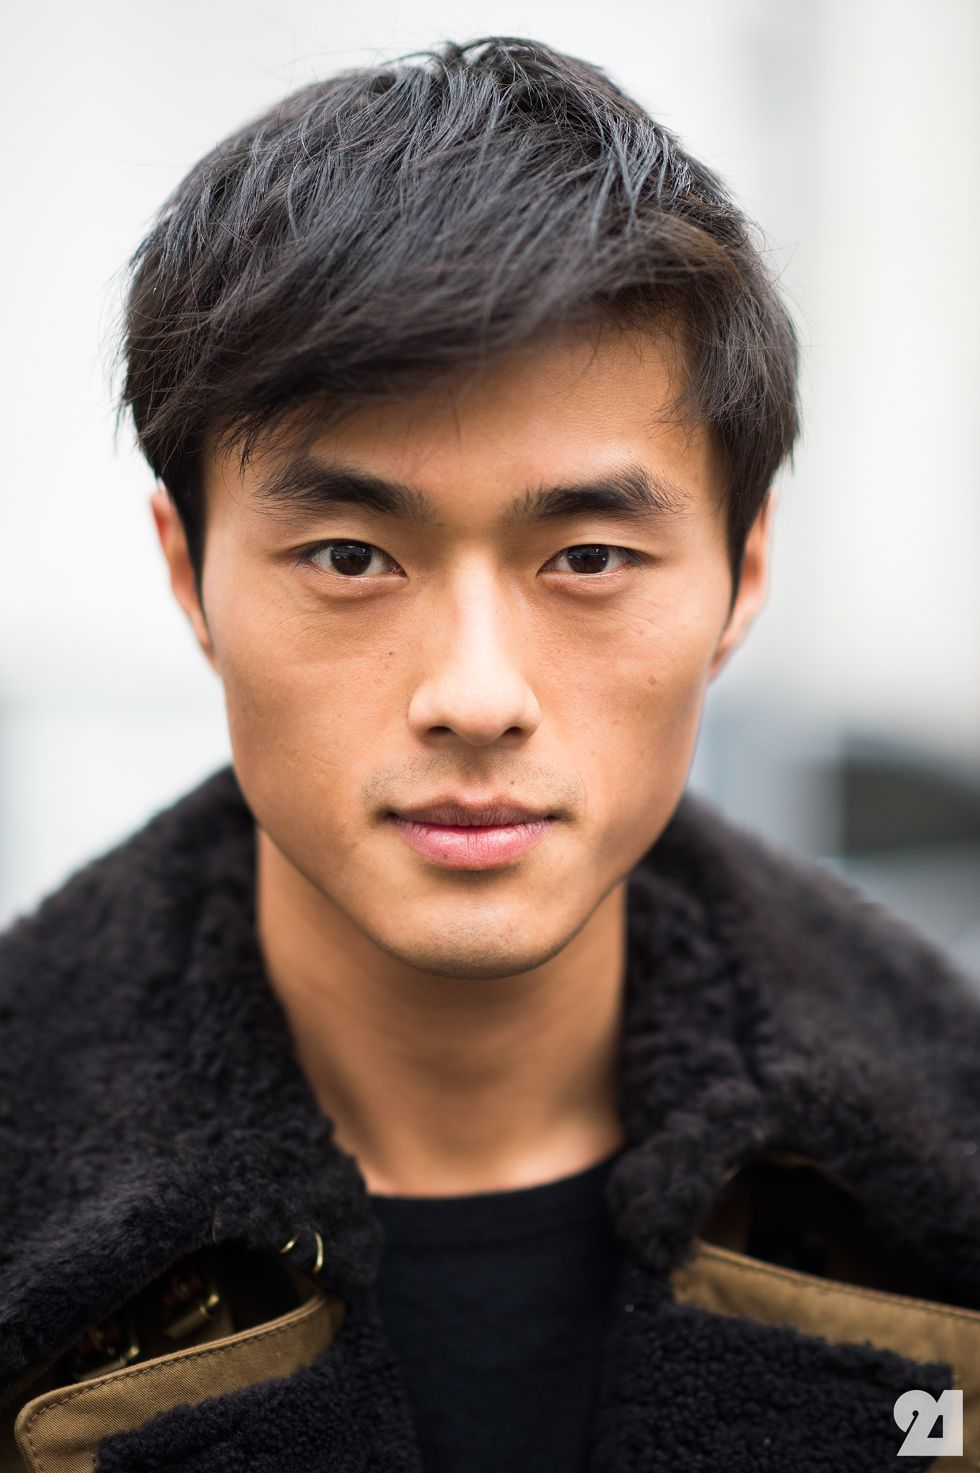 male model zhao lei as tai. except he doesn't have a crooked nose